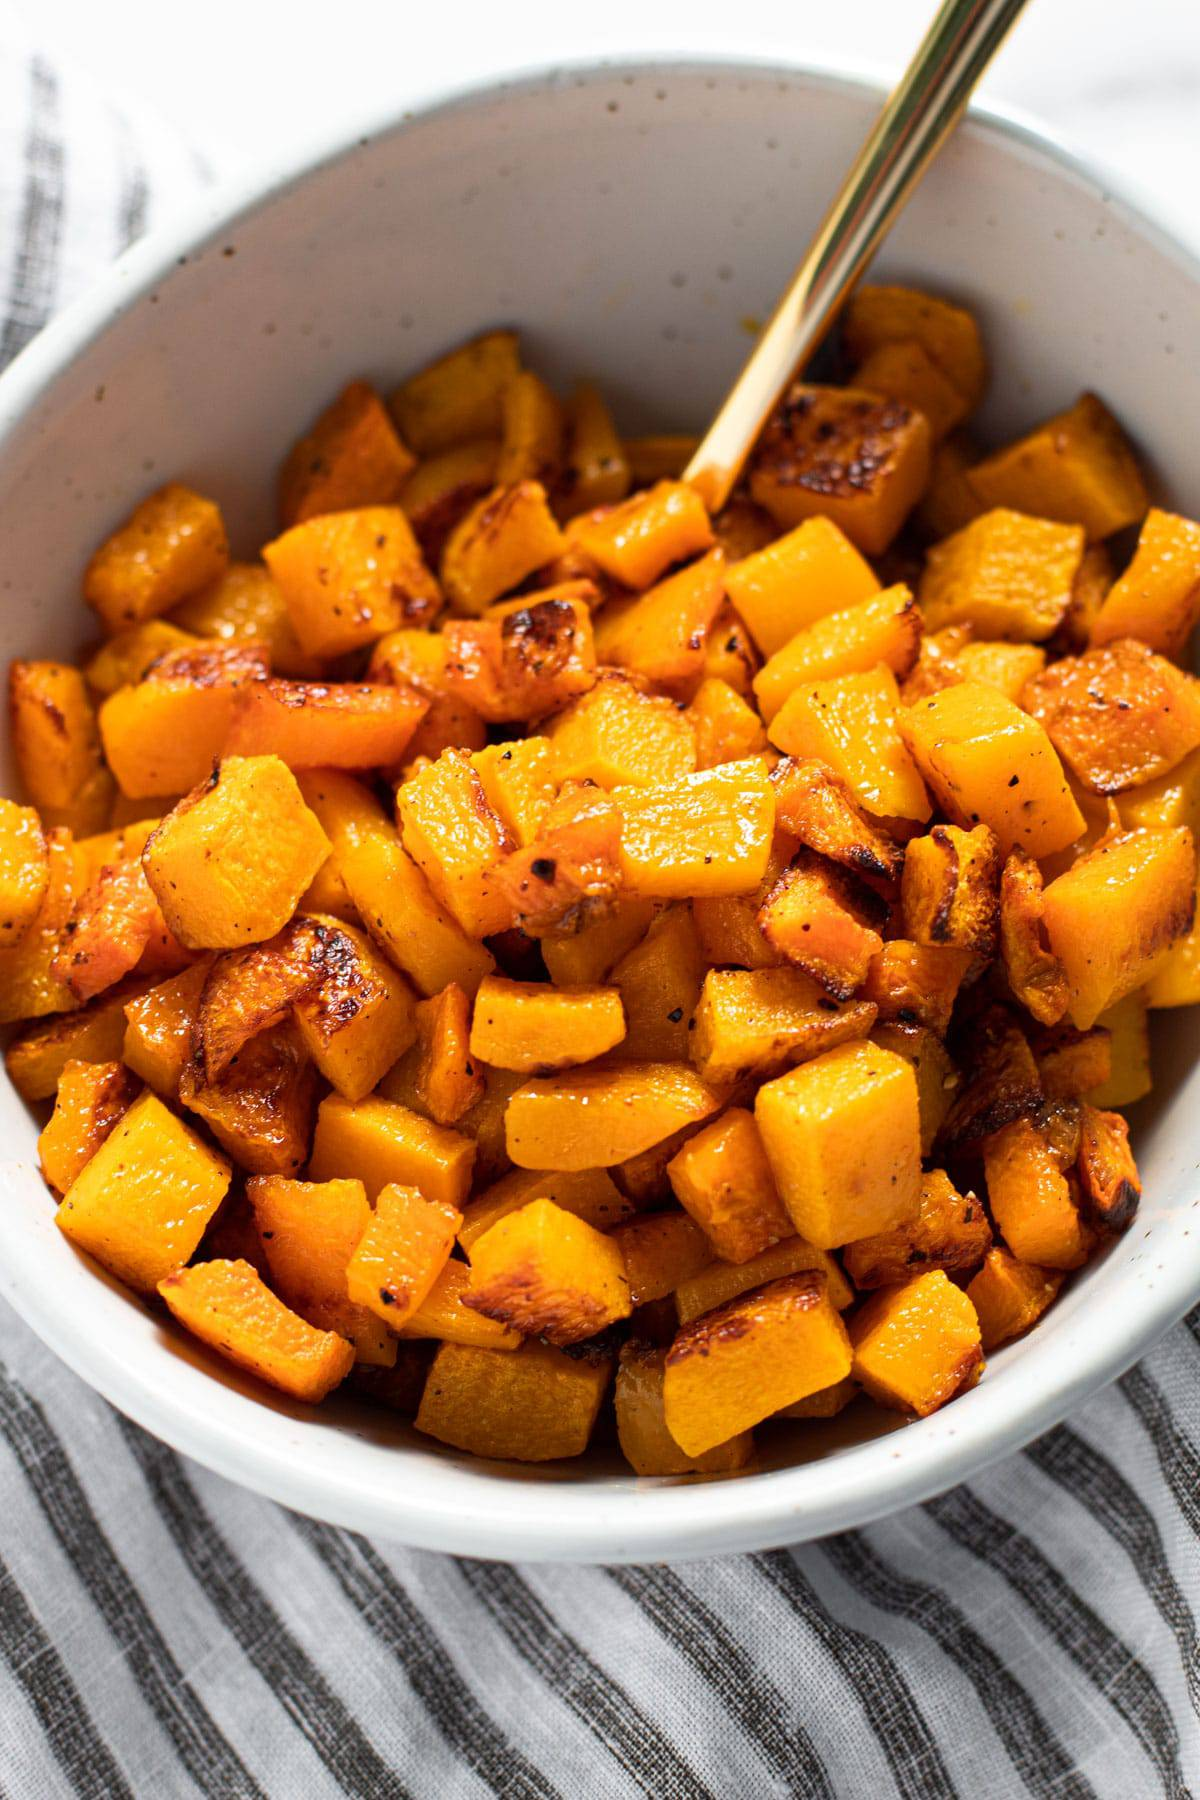 A bowl of roasted butternut squash.